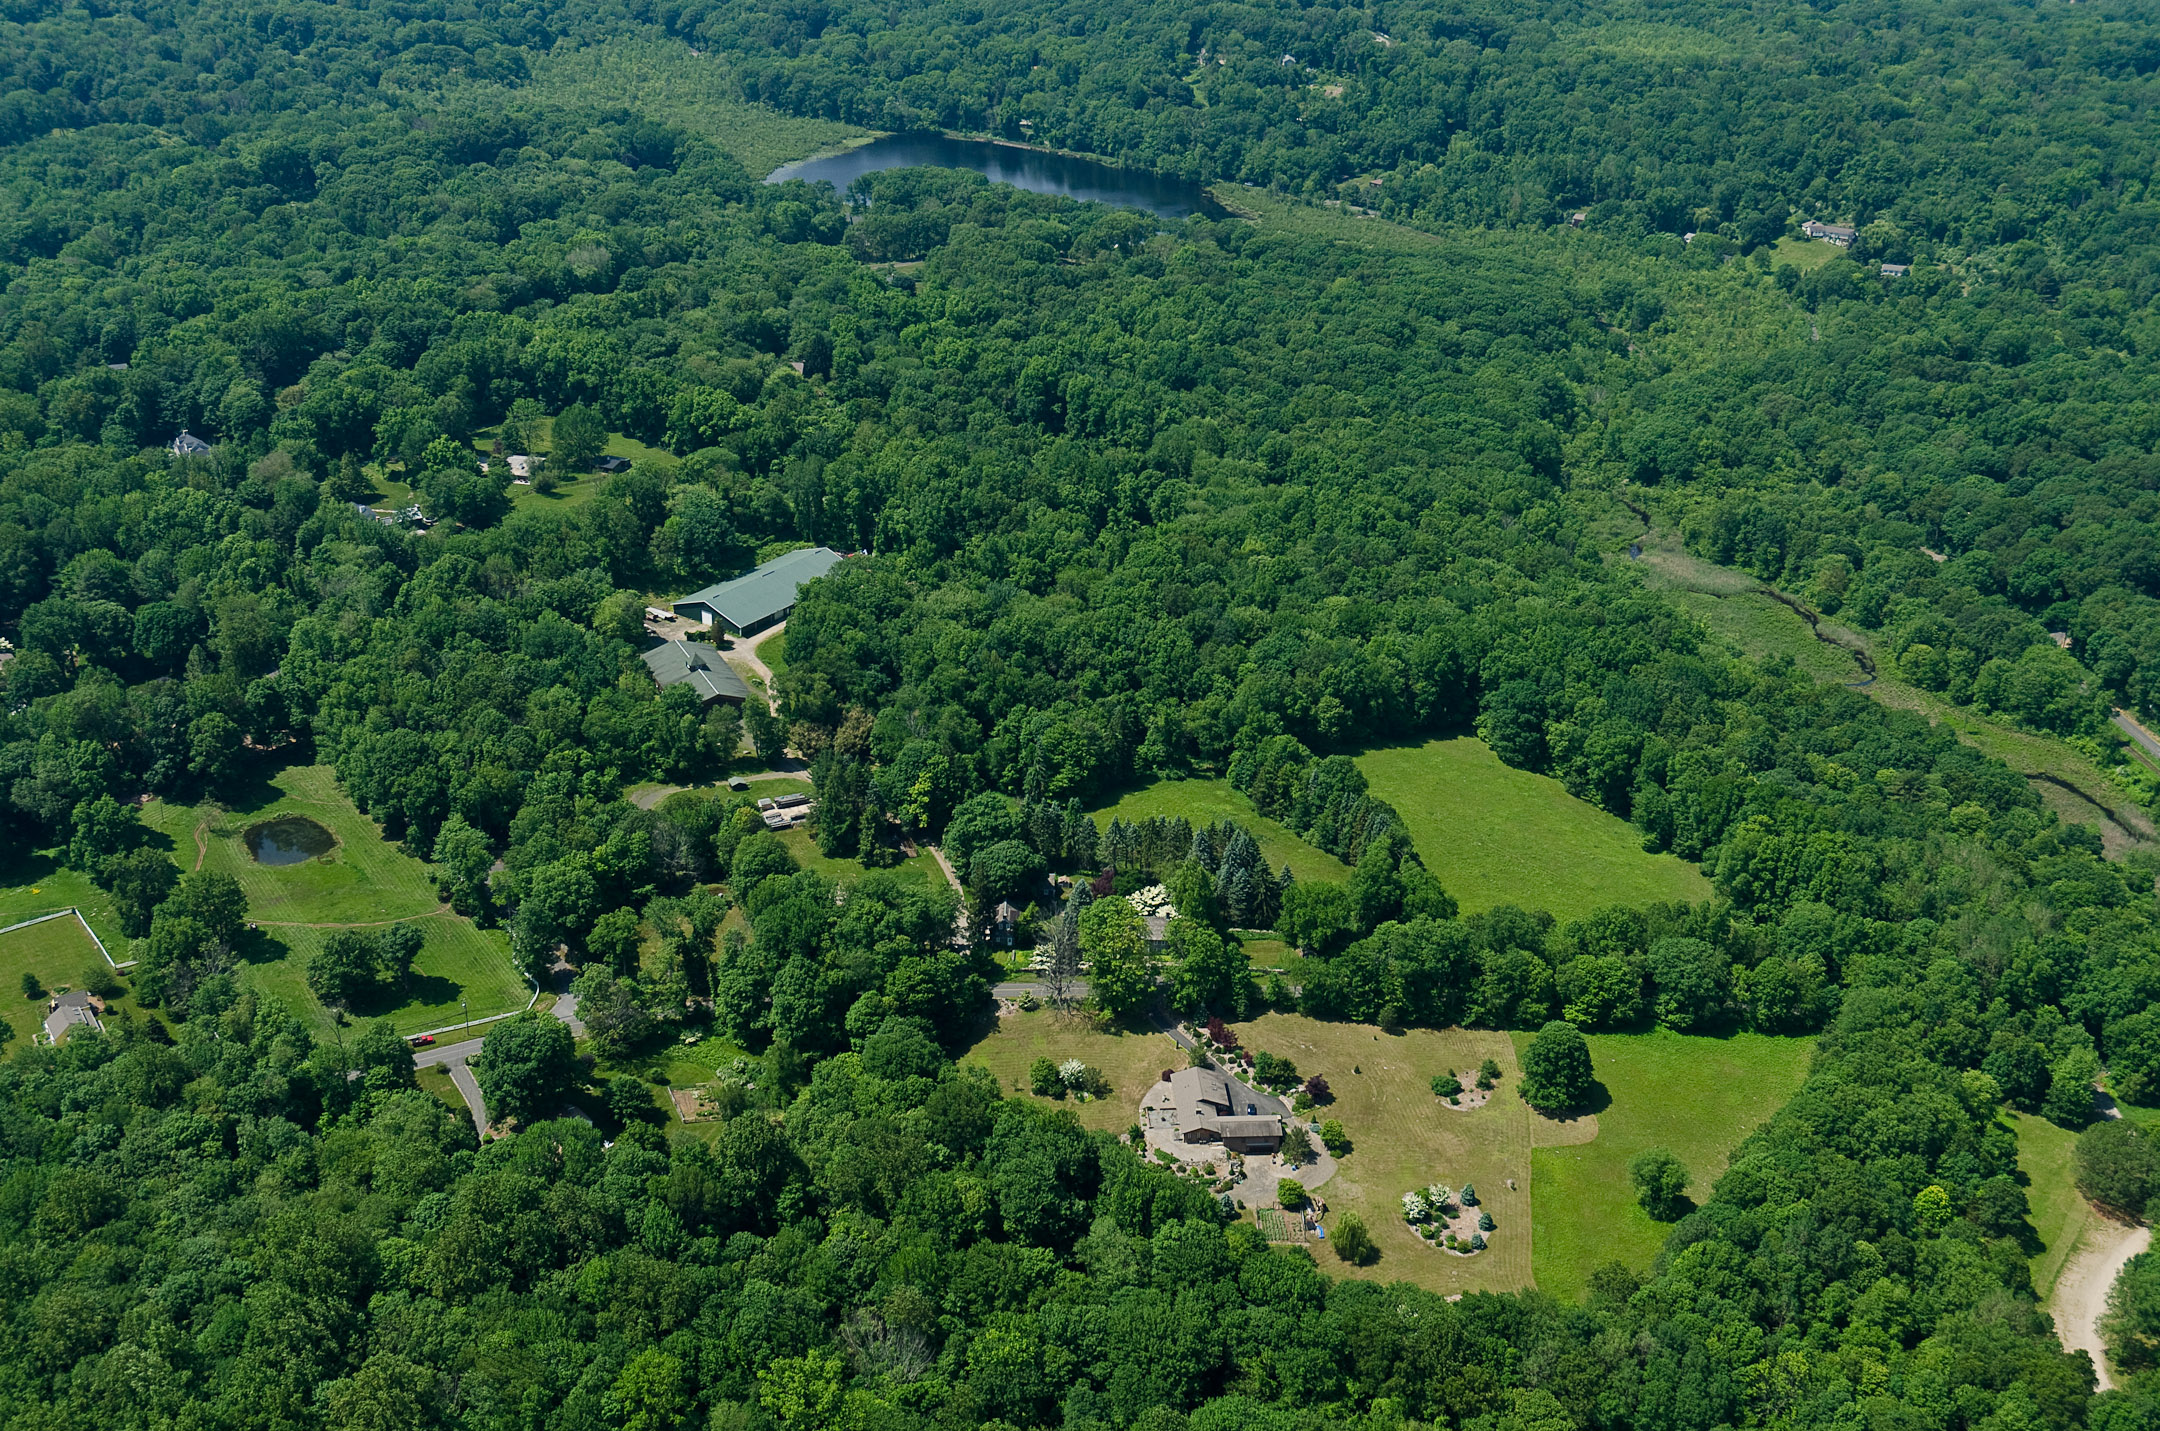 Land for Sale at Marchant Woods Subdivision - 12 Approved Parcels Lot 8 12 Marchant Road Redding, Connecticut 06896 United States